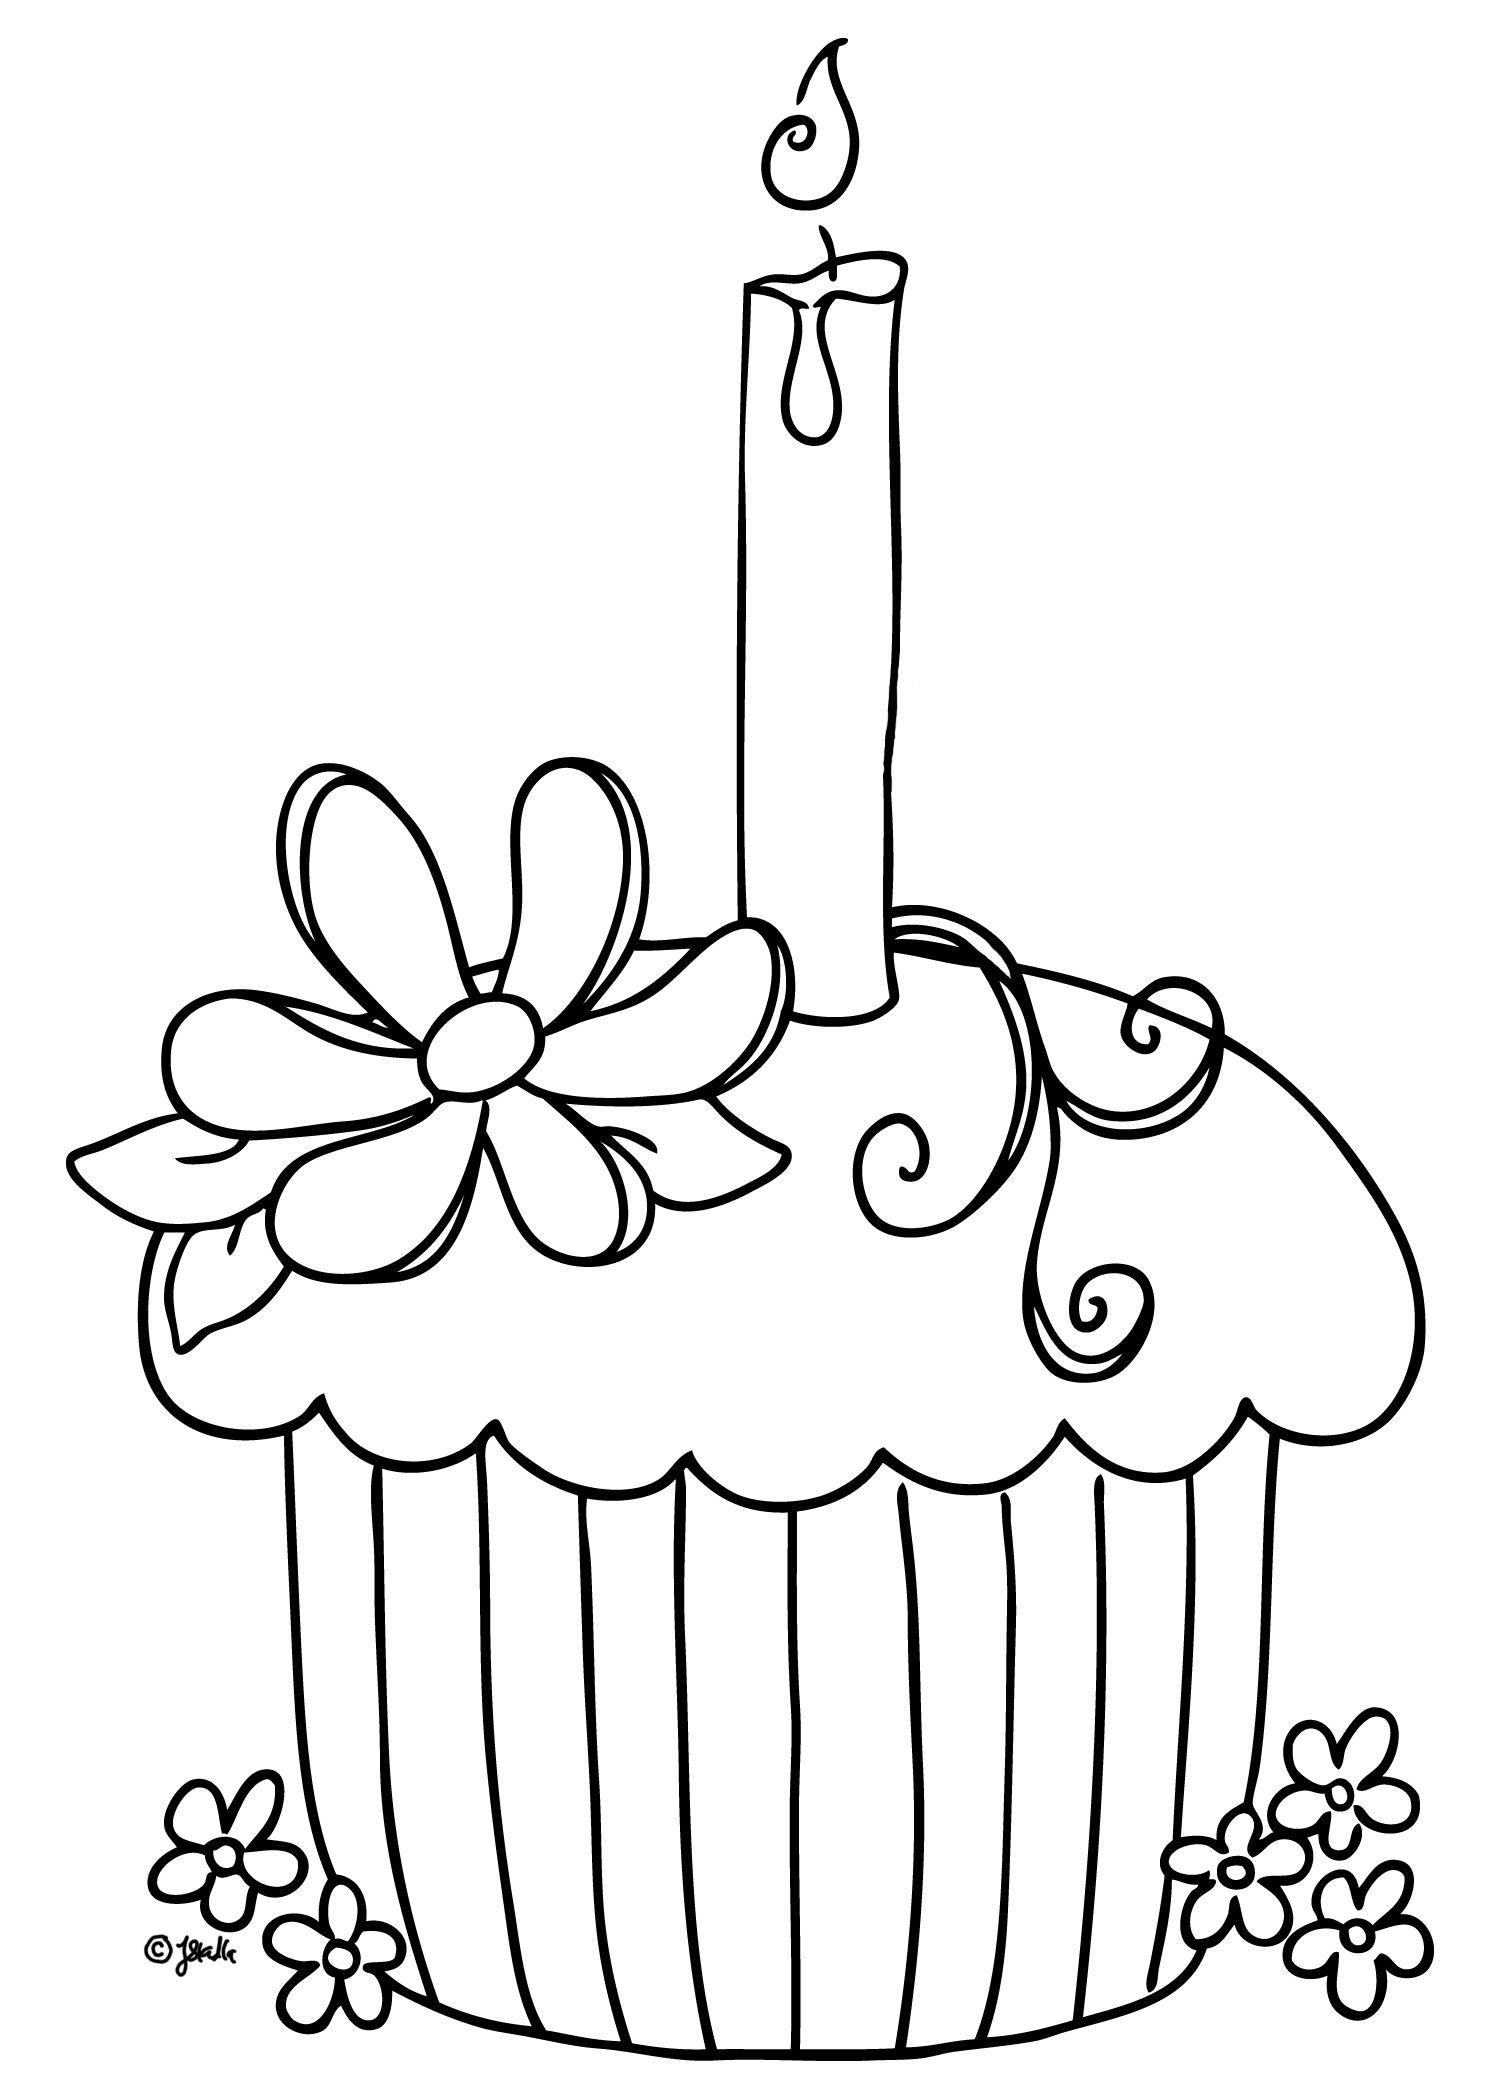 Top 25 Free Printable Cupcake Coloring Pages Online | Colorear ...